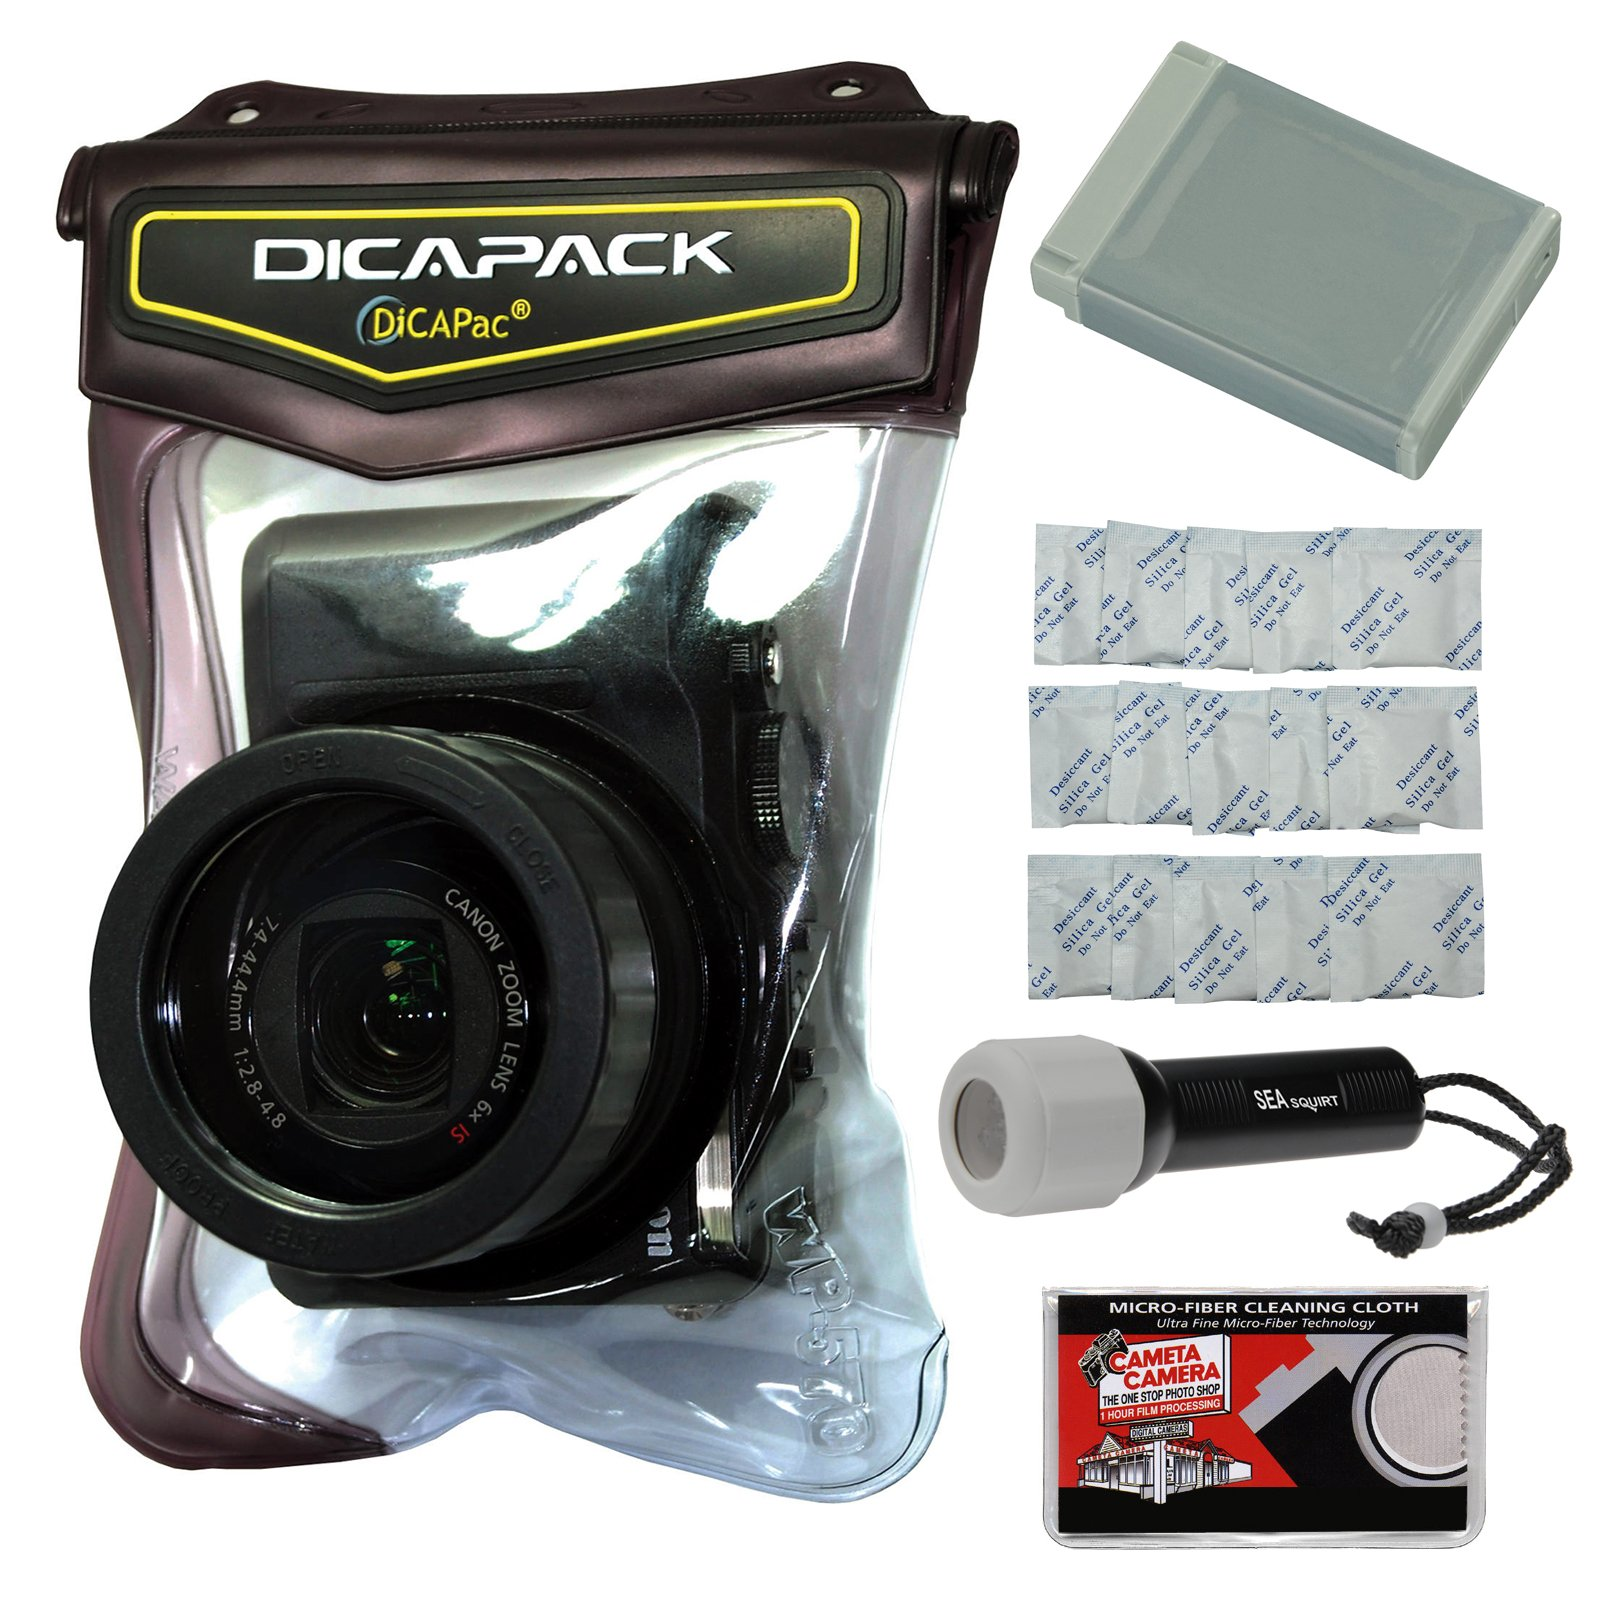 DiCAPac WP-570 Waterproof Case with NB-13L Battery + LED Torch + Gel Packets + Kit for Canon Powershot G7 X II, G9 X II, SX720, SX730, SX740